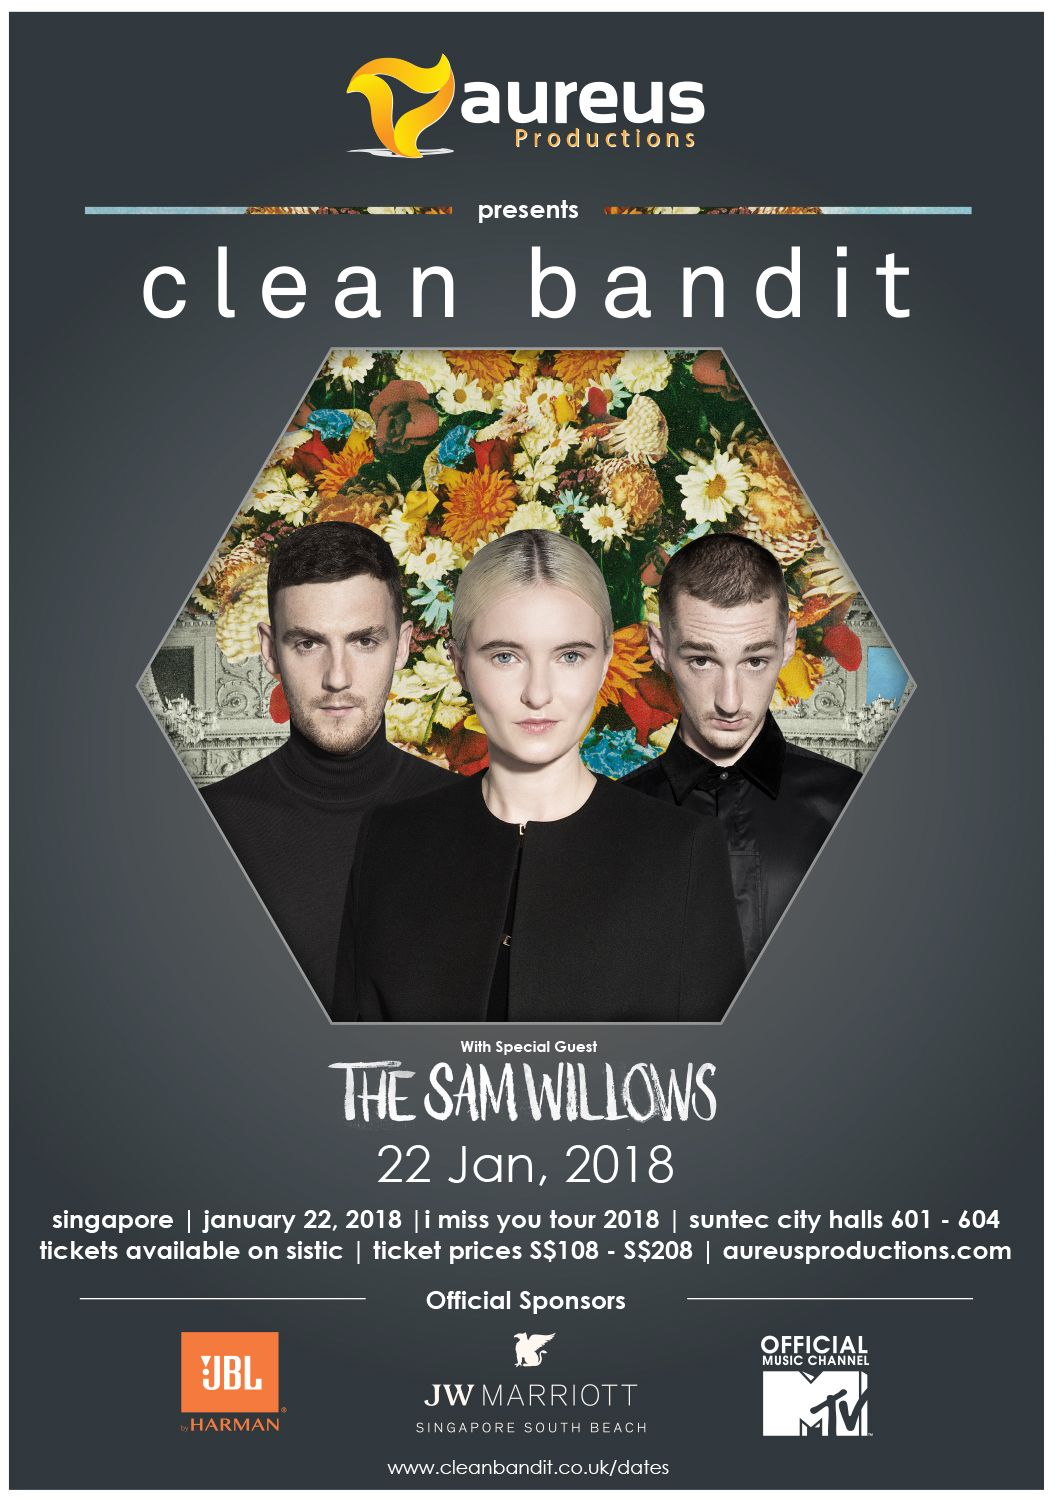 Contest win vip tix meet and greet with clean bandit in no admission for infants in arms or children below the age of 5 children above 5 years old must purchase ticket for admission kristyandbryce Images